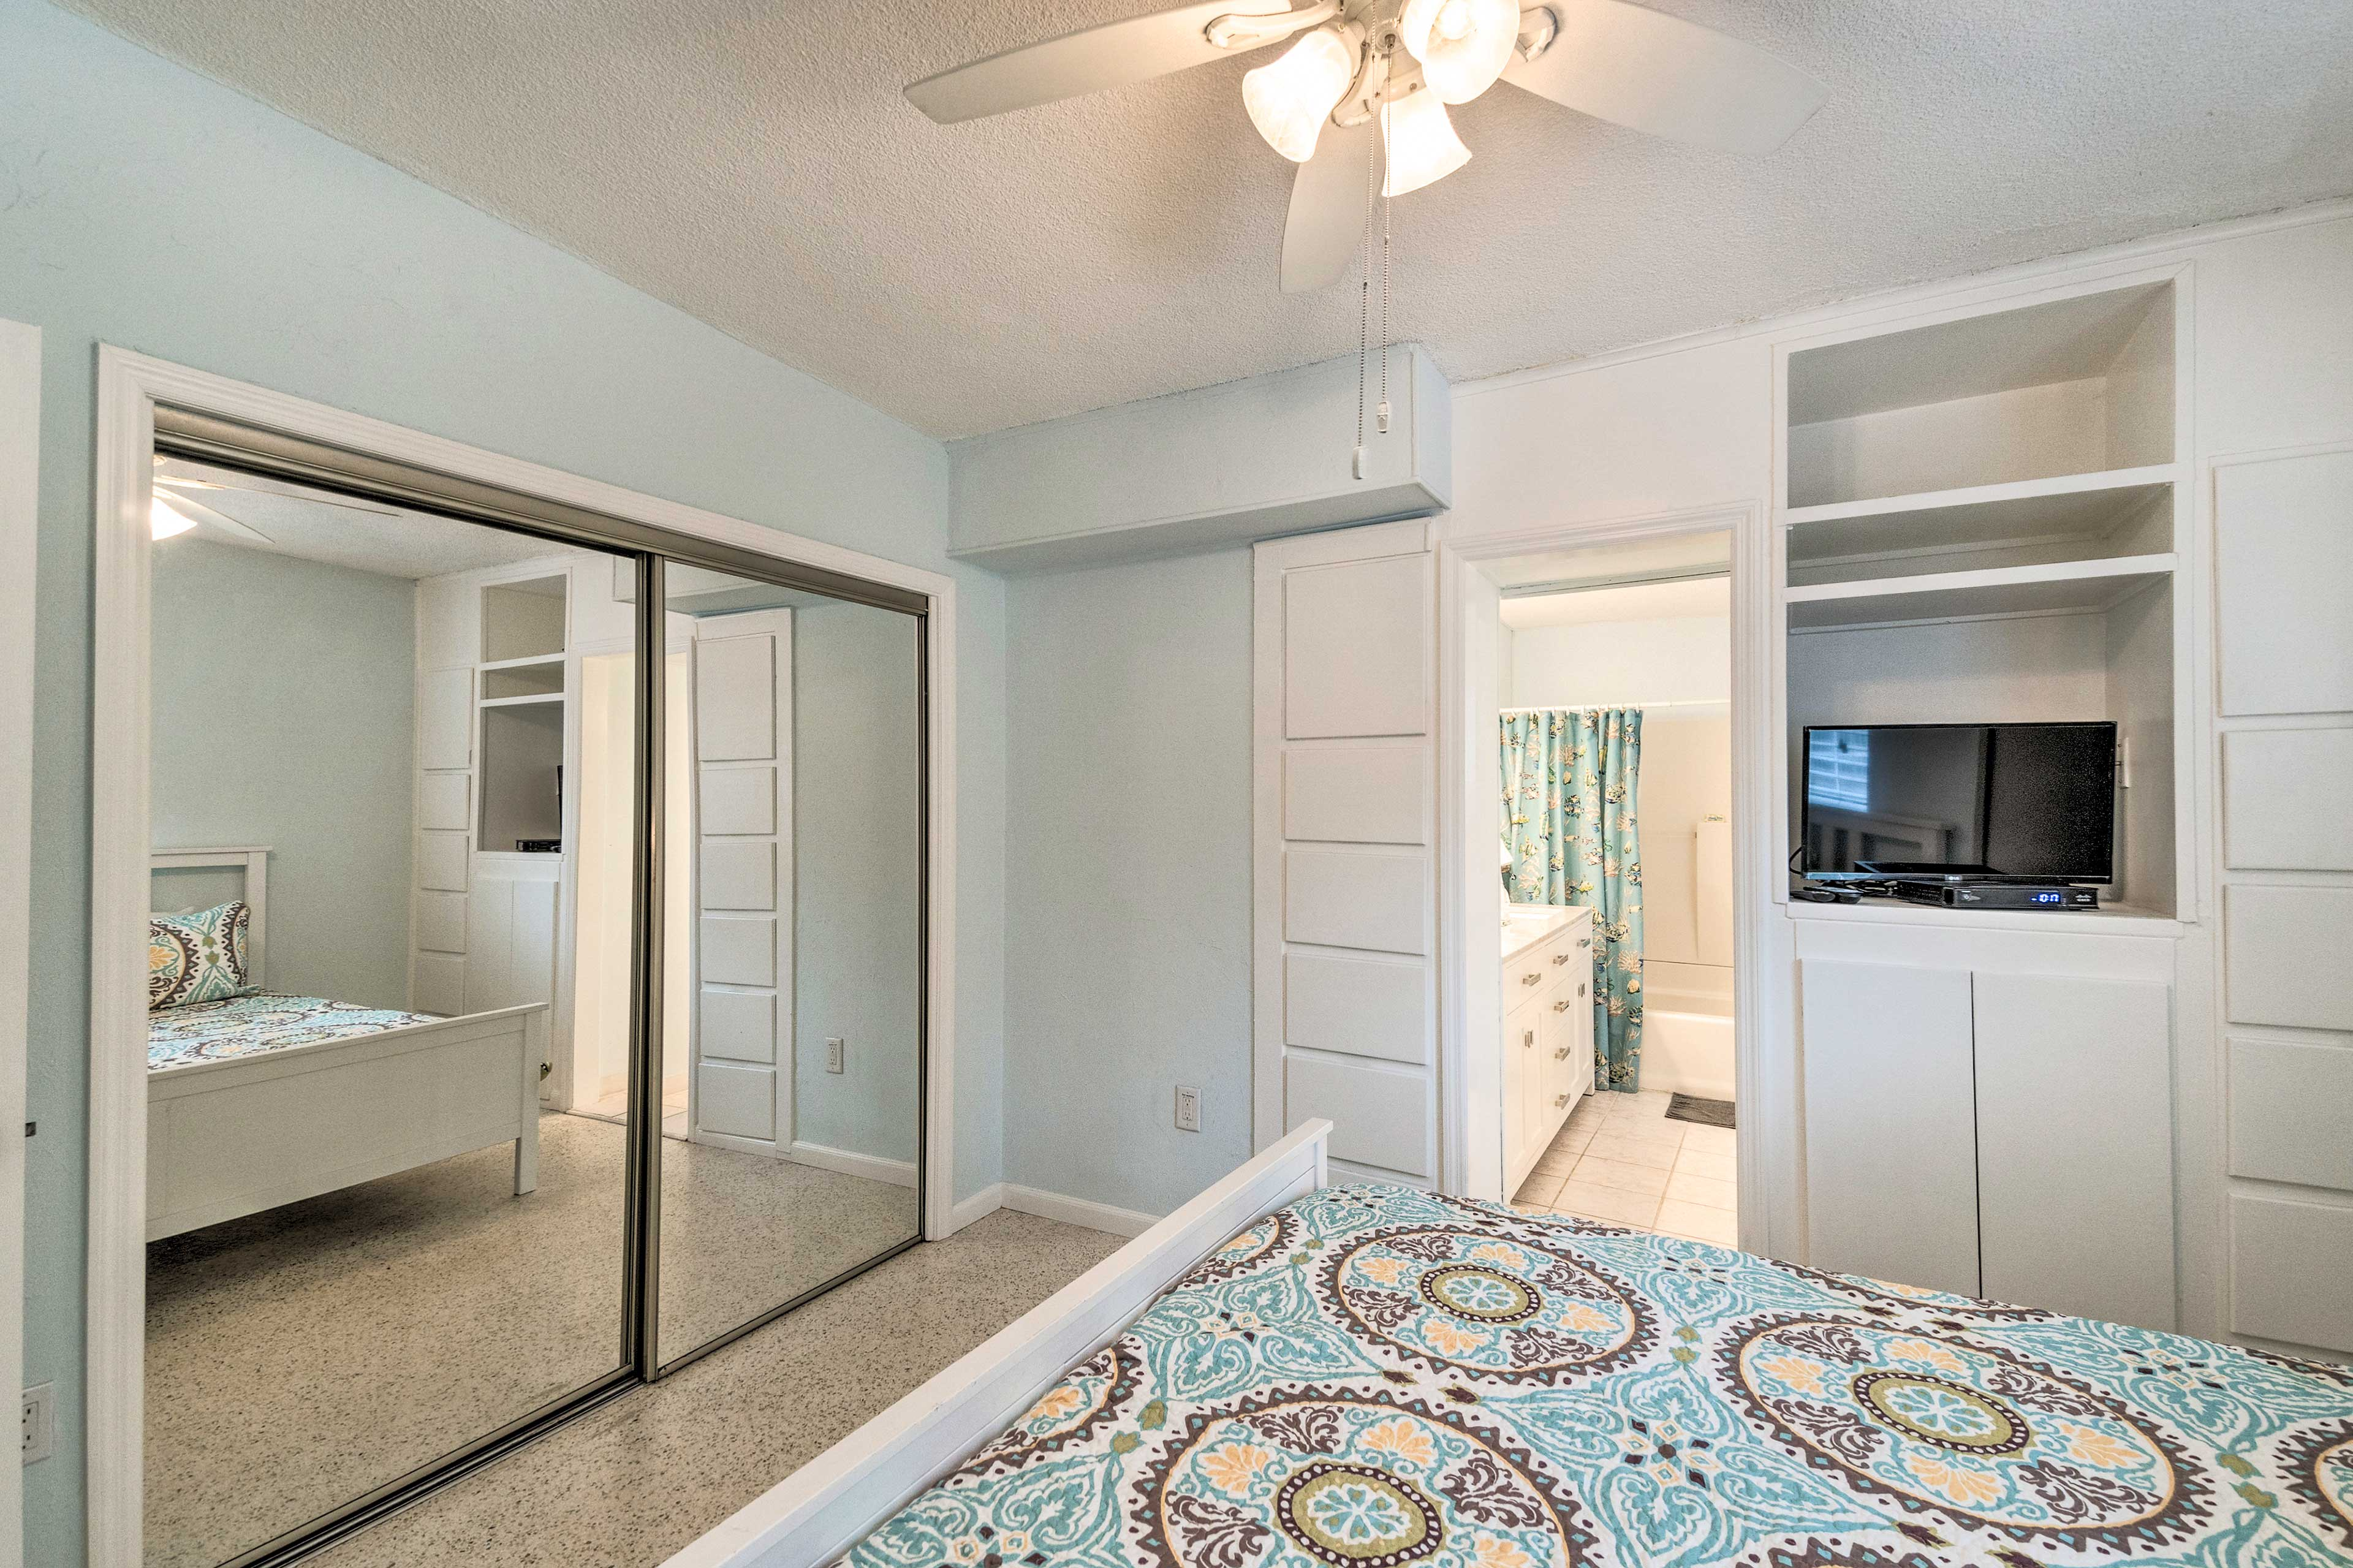 There's plenty of closet space, so you can make yourself at home.